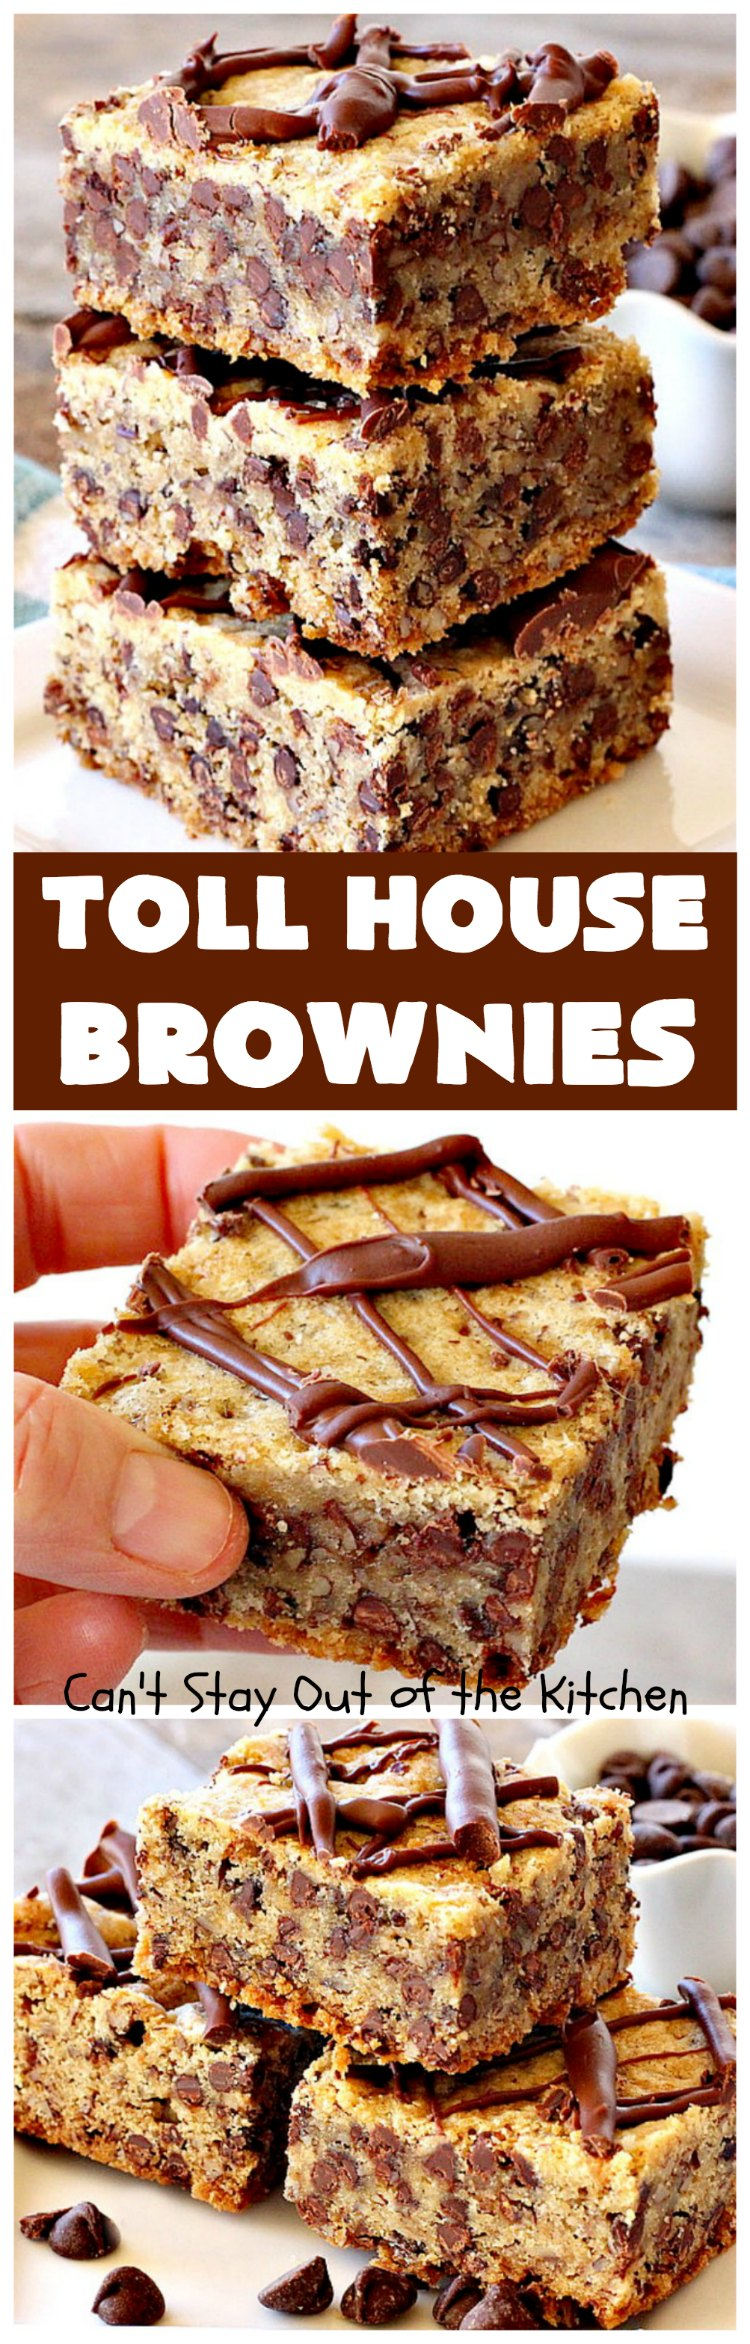 Toll House Cookie Cake Prices